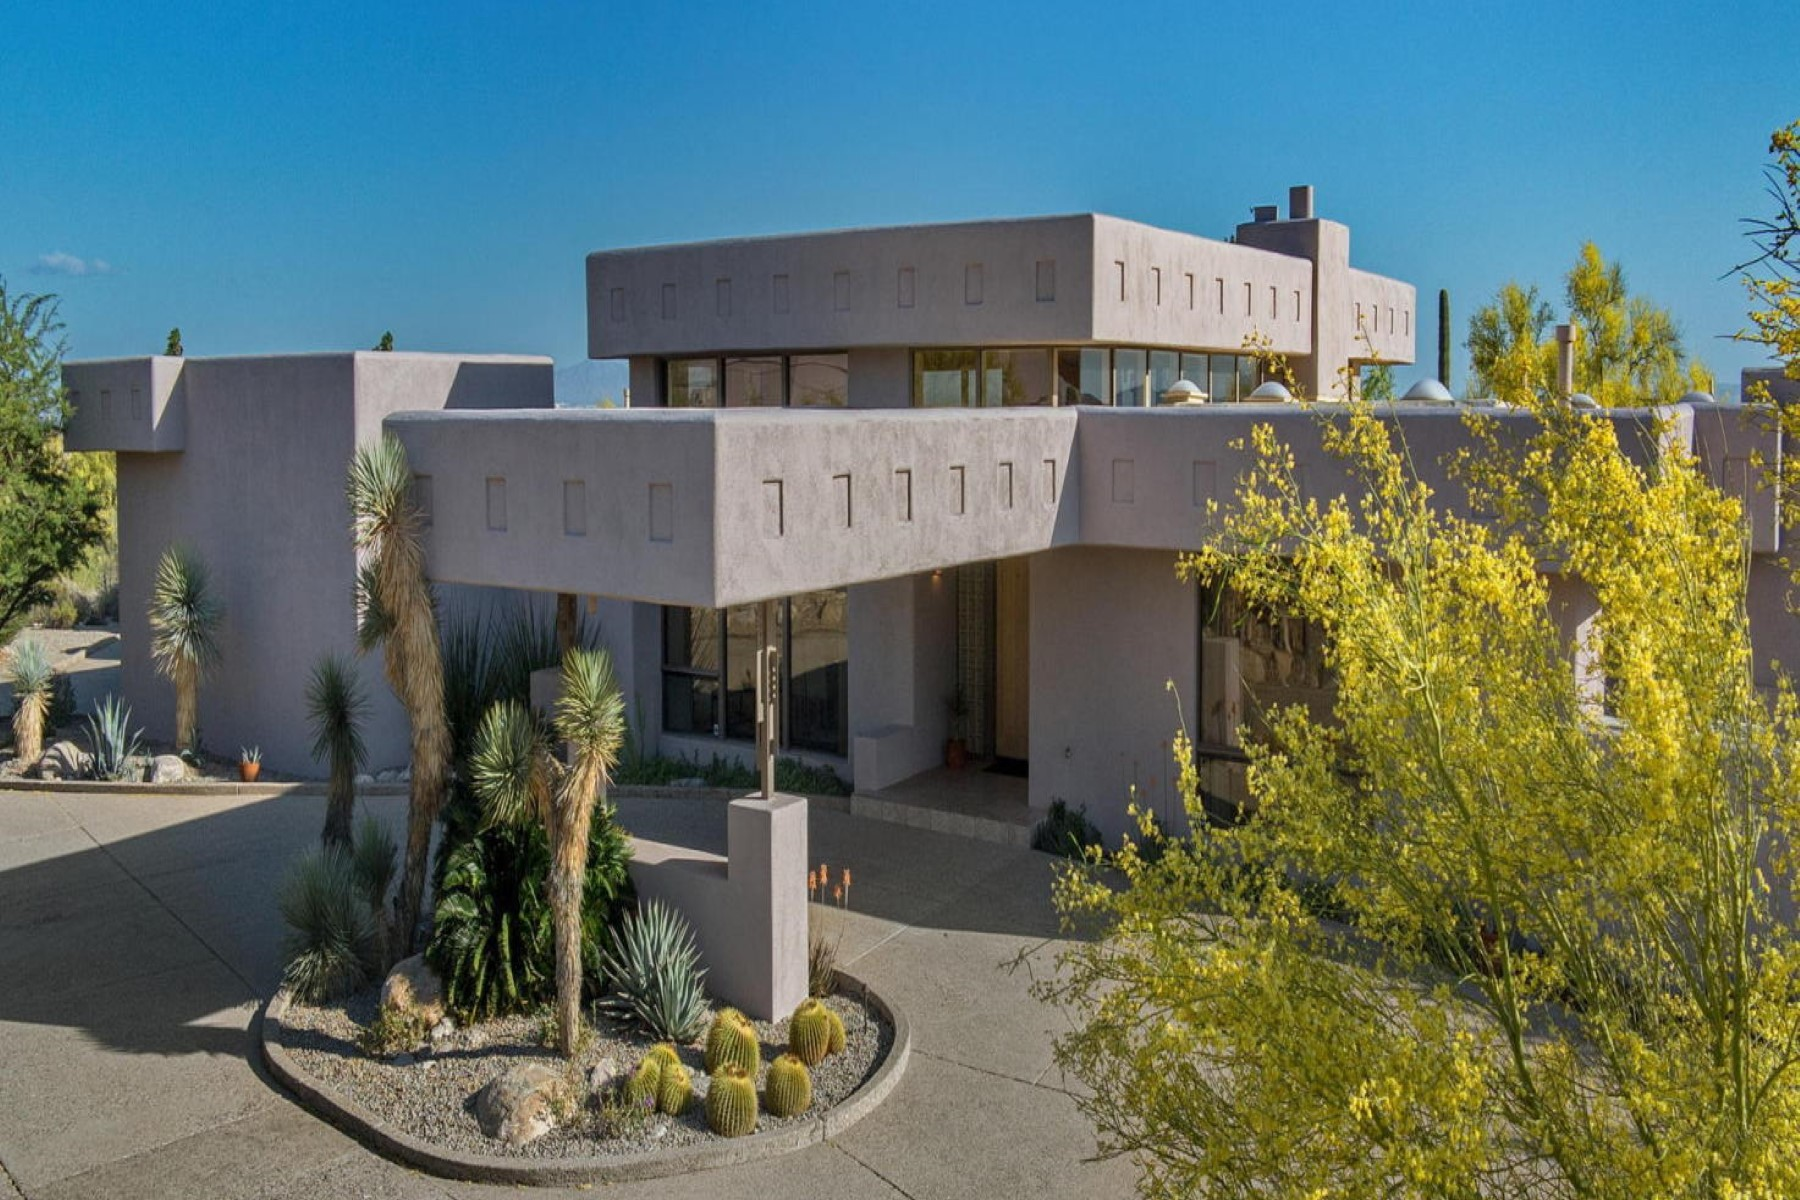 一戸建て のために 売買 アット Spectacular desert contemporary home designed by Tyson 5783 N Placita Juan Paisano Tucson, アリゾナ, 85718 アメリカ合衆国